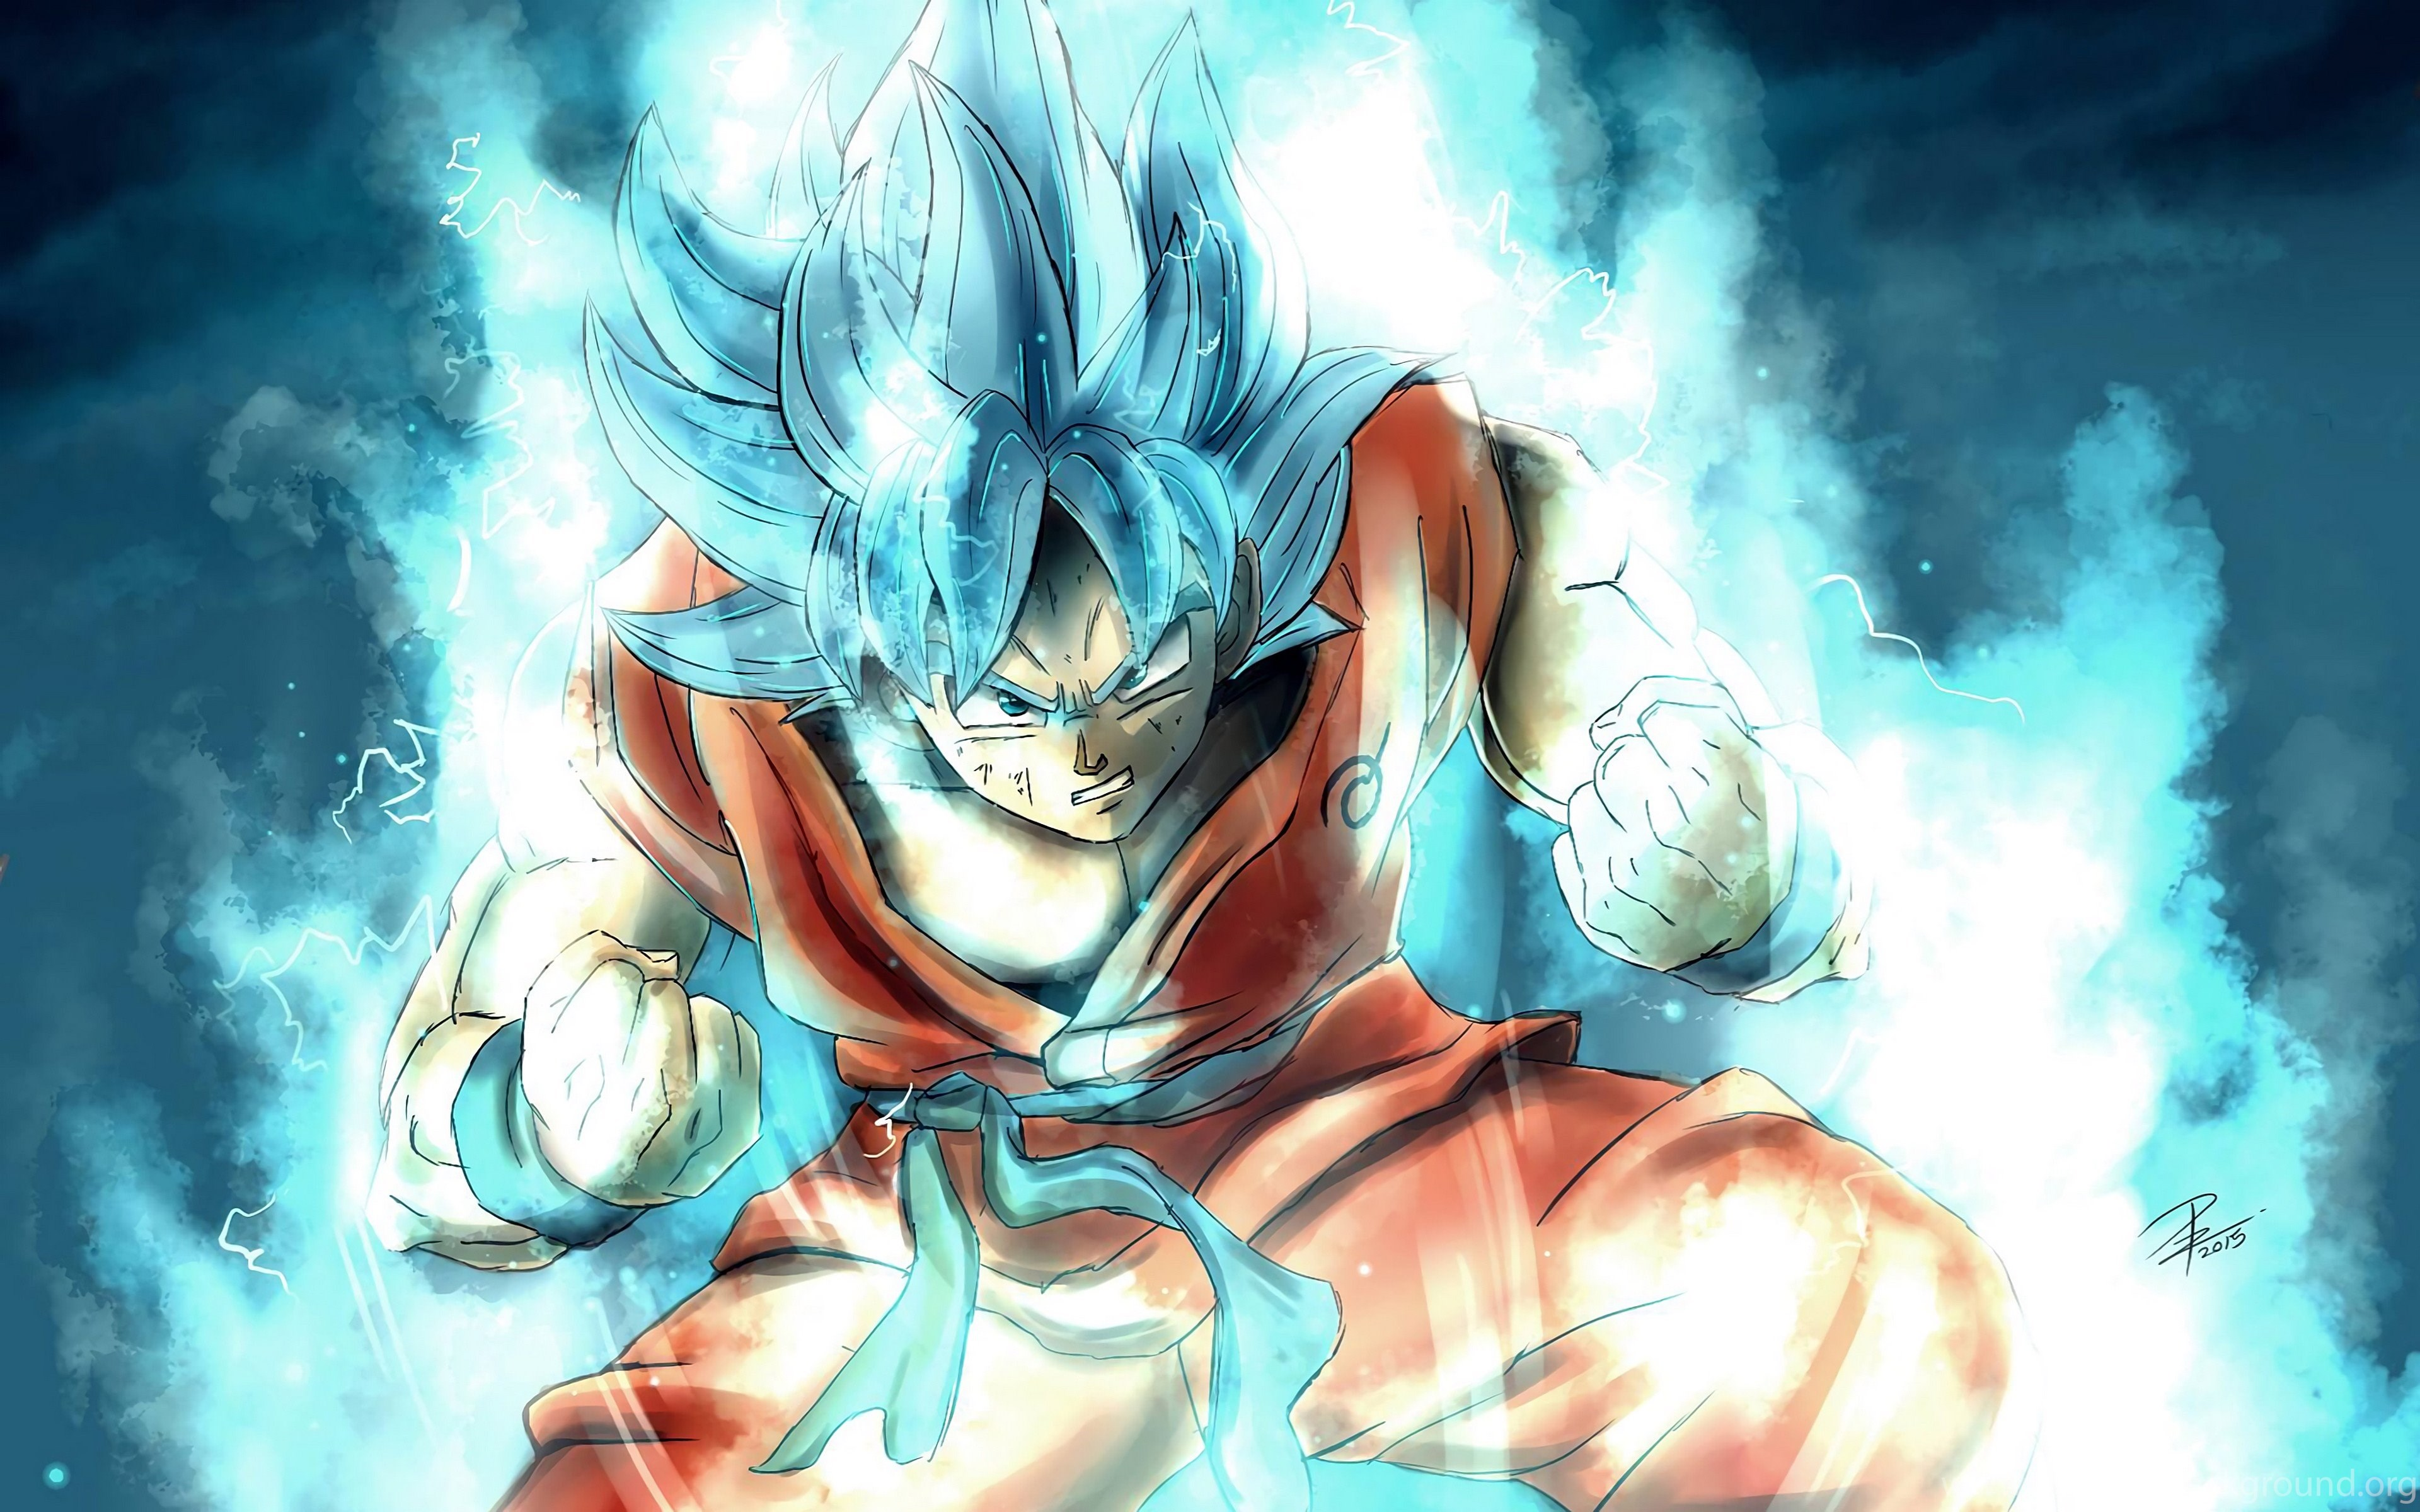 Goku Dragon Ball Super 4k 2018, HD Anime, 4k Wallpapers, Images, Backgrounds, Photos and Pictures